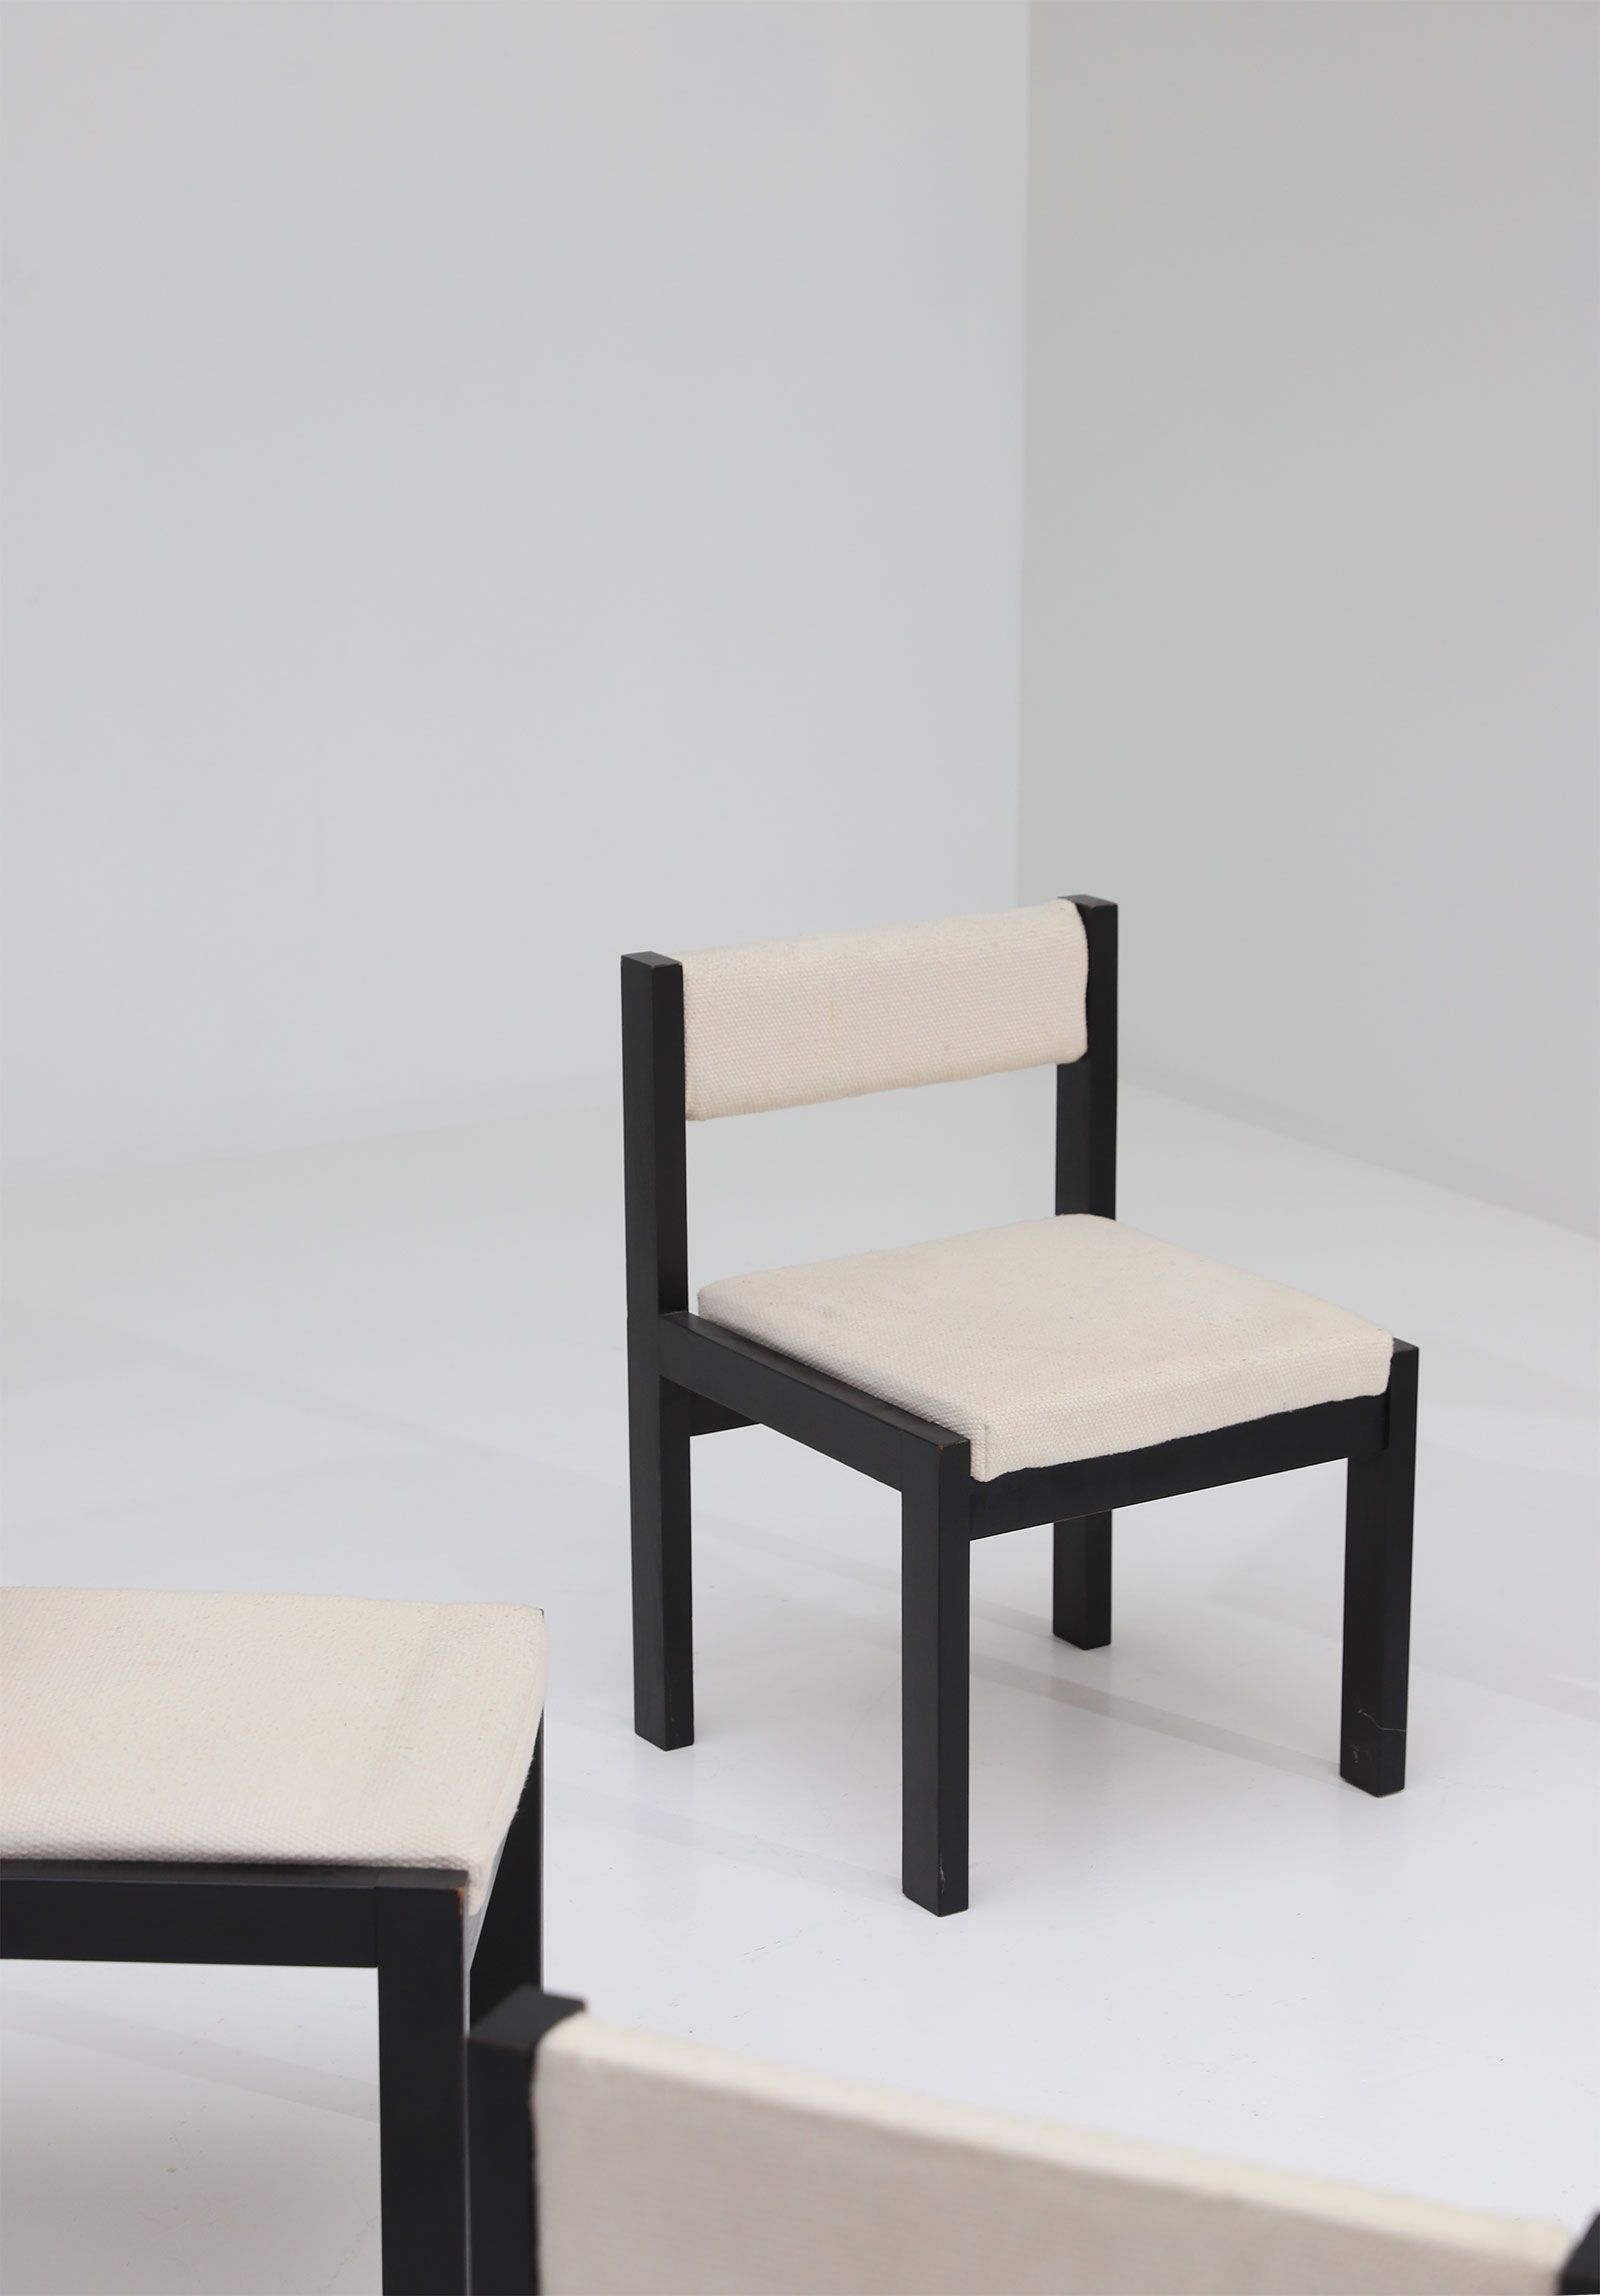 6 chairsimage 5